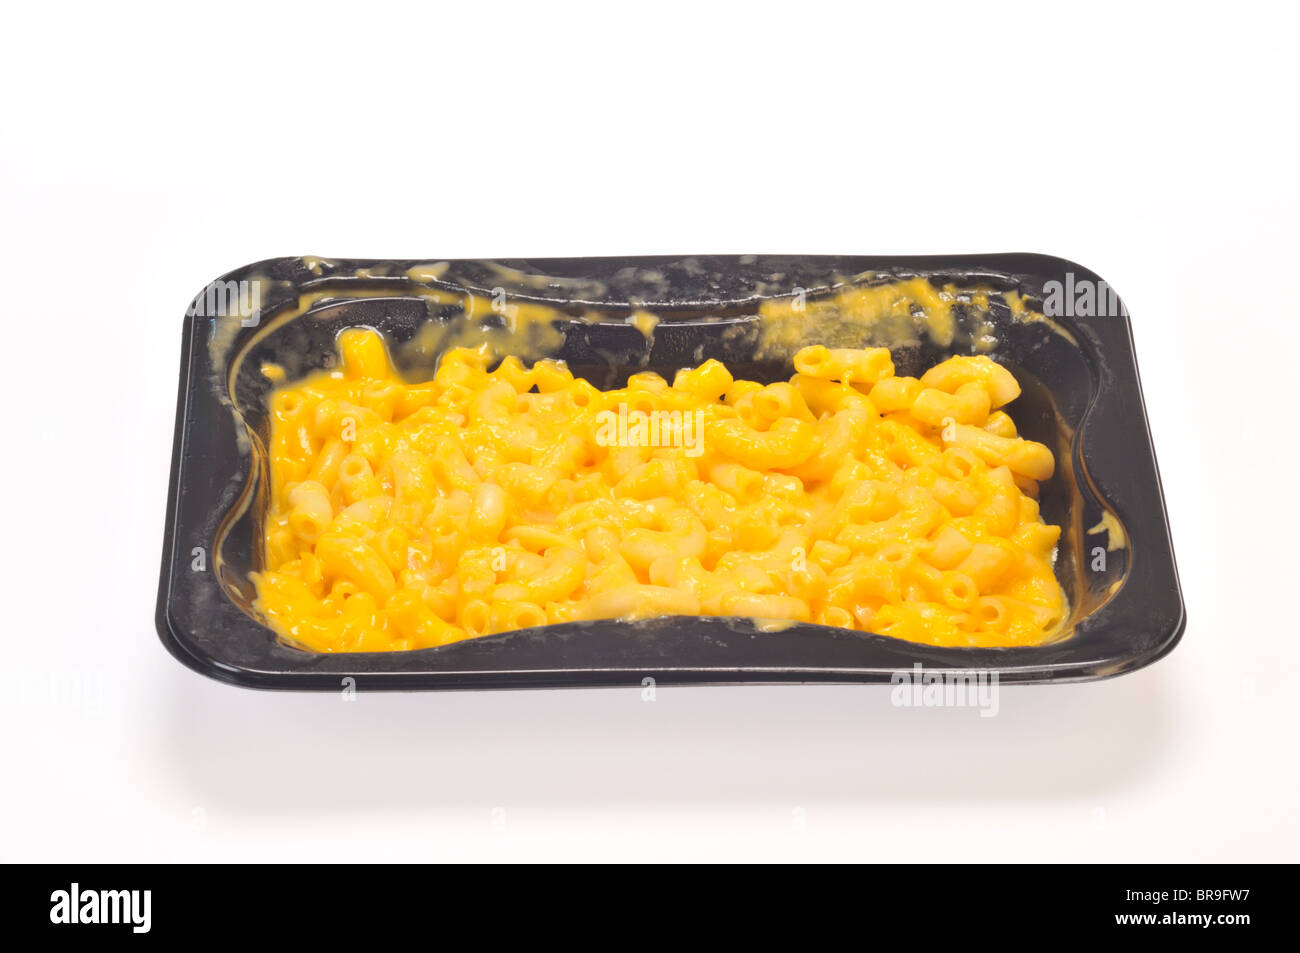 Tray of cooked macaroni and cheese on white background cutout - Stock Image